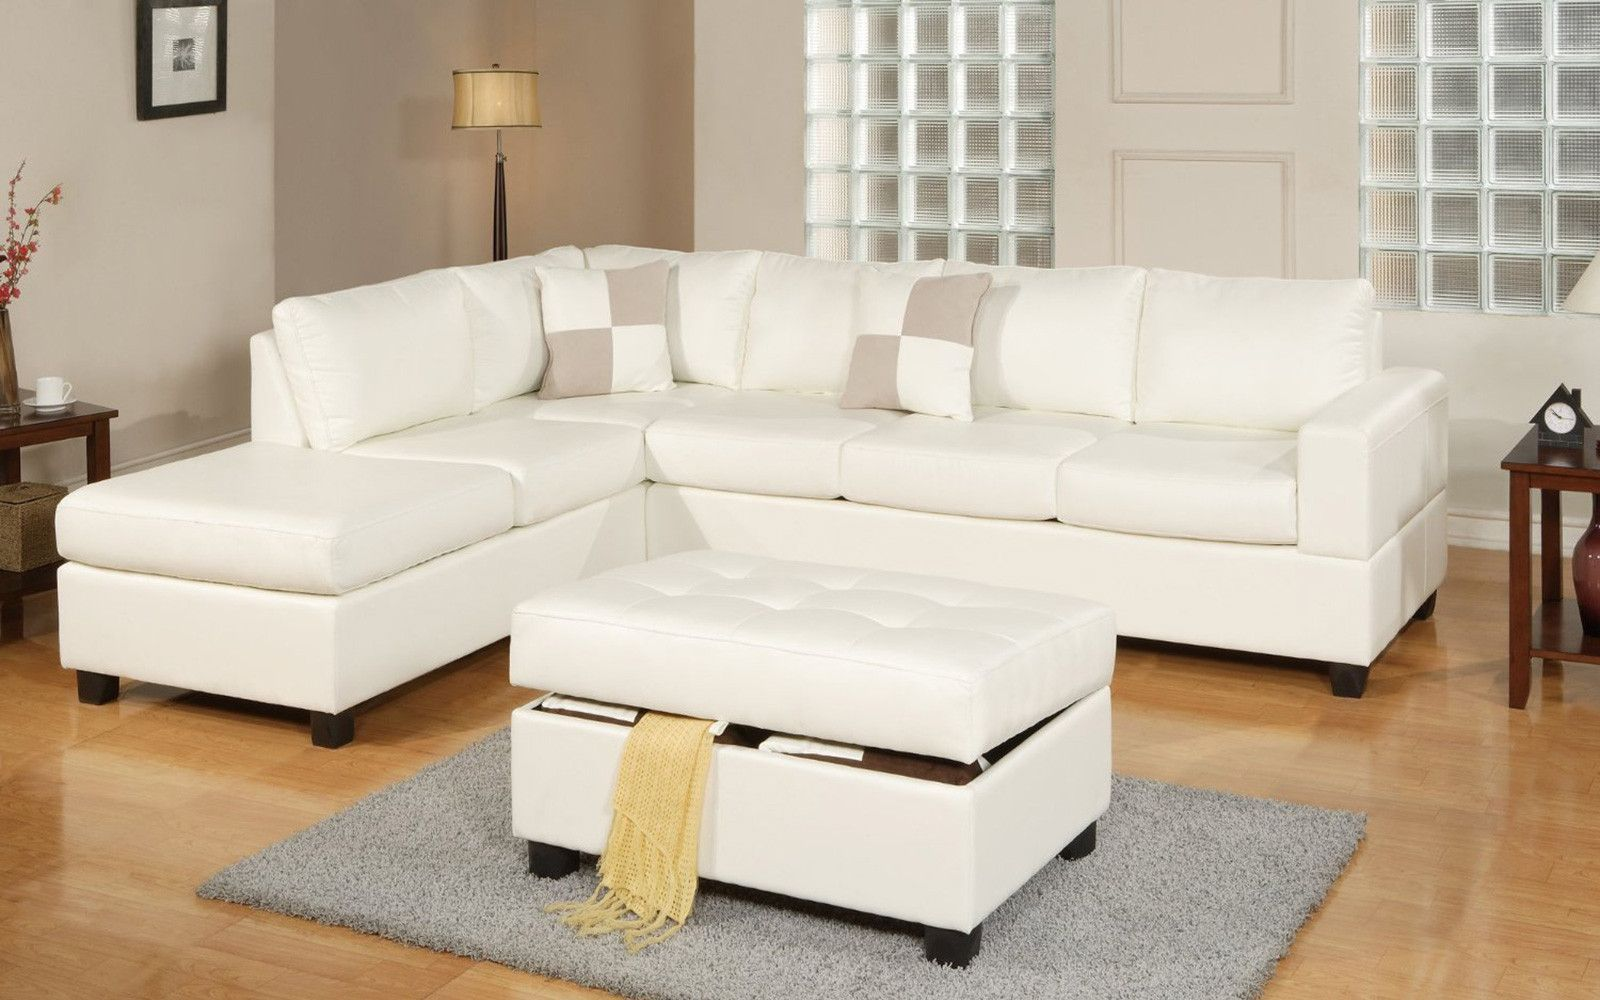 Cruce Modern Bonded Leather Sectional With Reversible Chaise Leather Sectional Sofas Sectional Sofa White Sectional Sofa